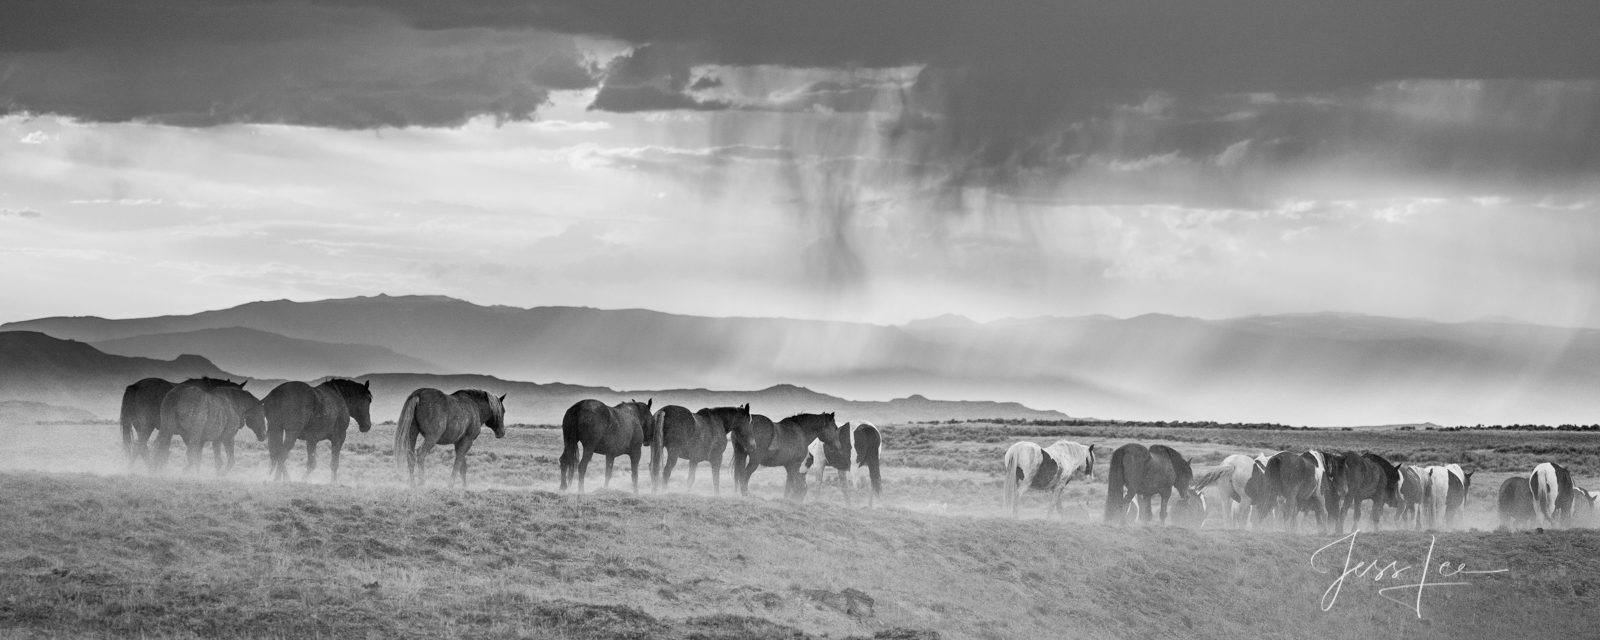 Fine Art Print of Wyoming Wild Horses. Limited Edition of 250 Luxurious Prints.  Choose the style, size, and medium for your...